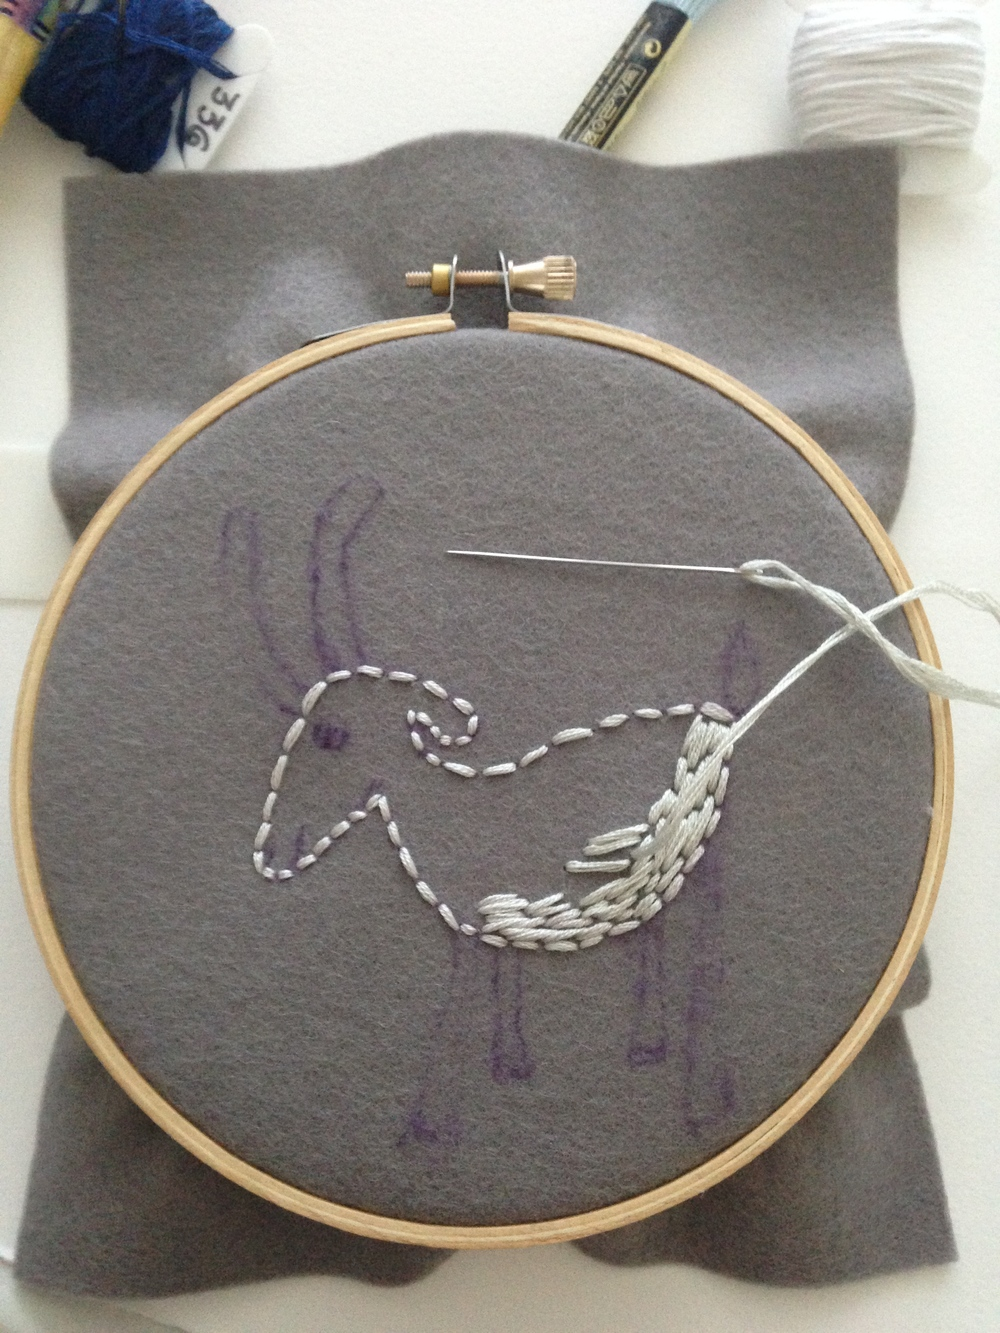 capricorn_embroidery.jpg